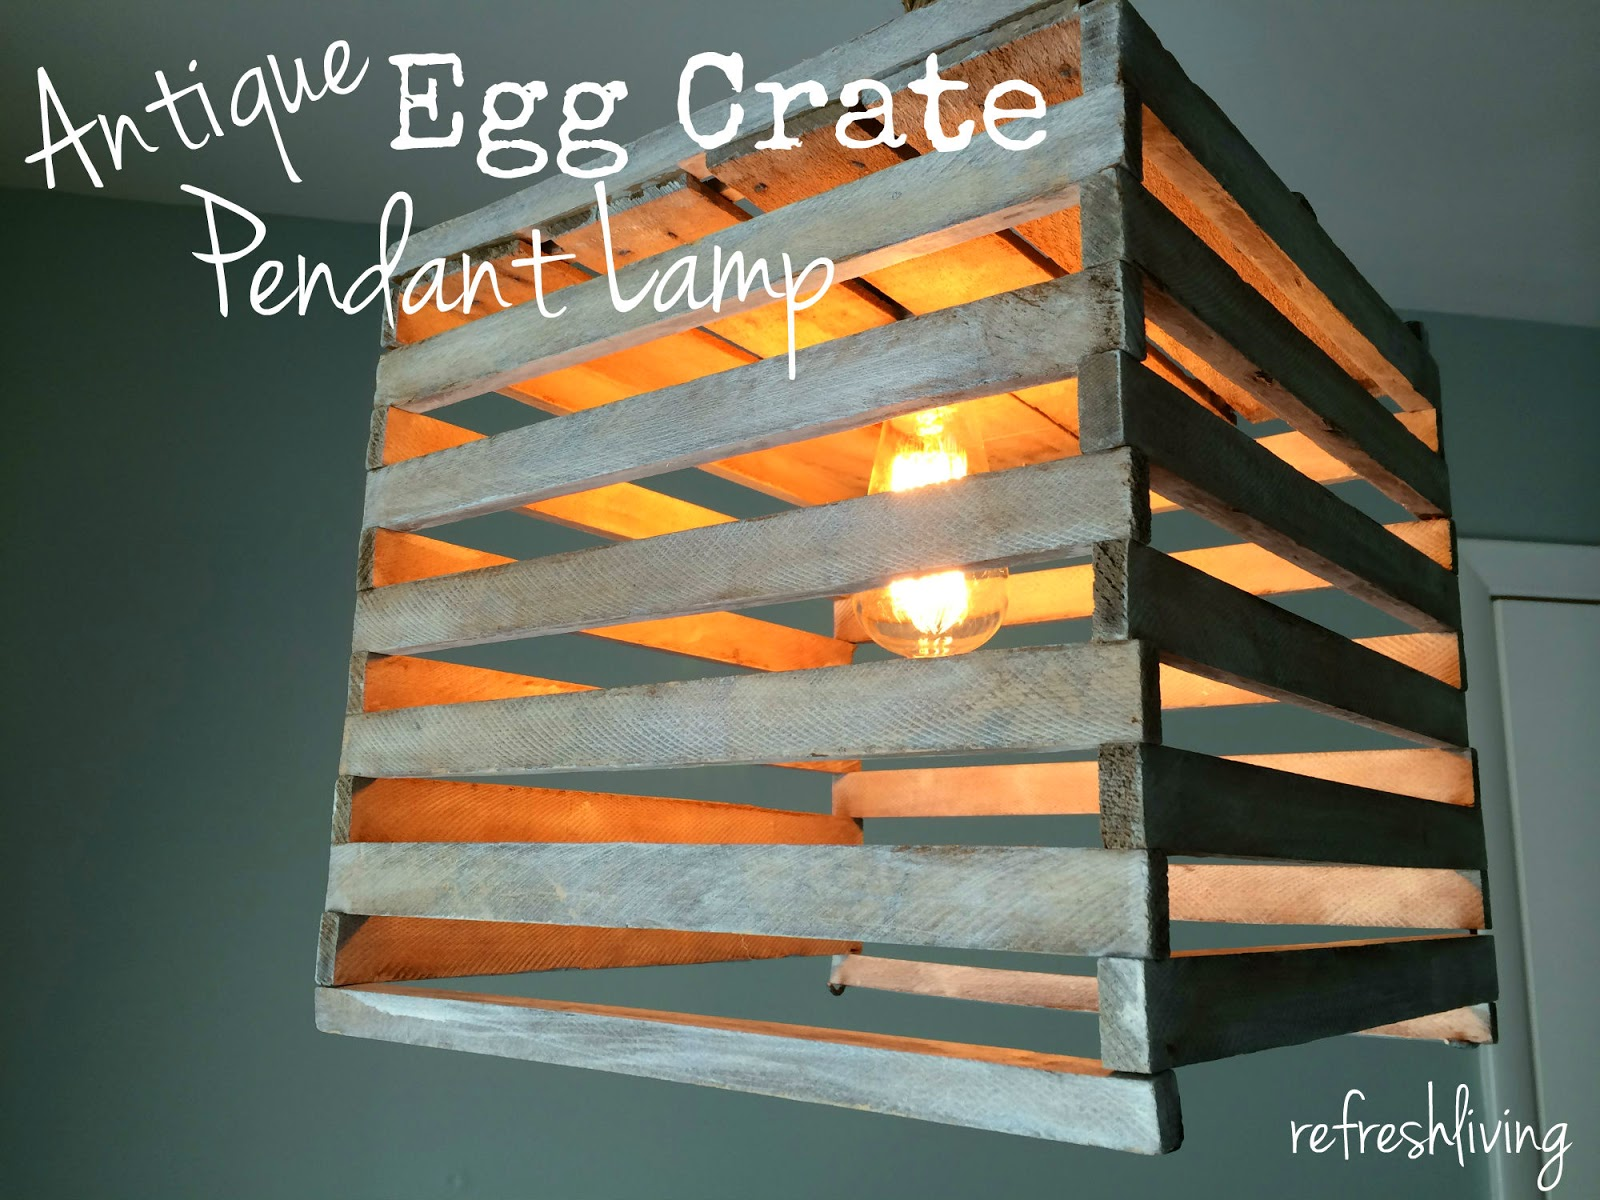 antique egg crate upcycle